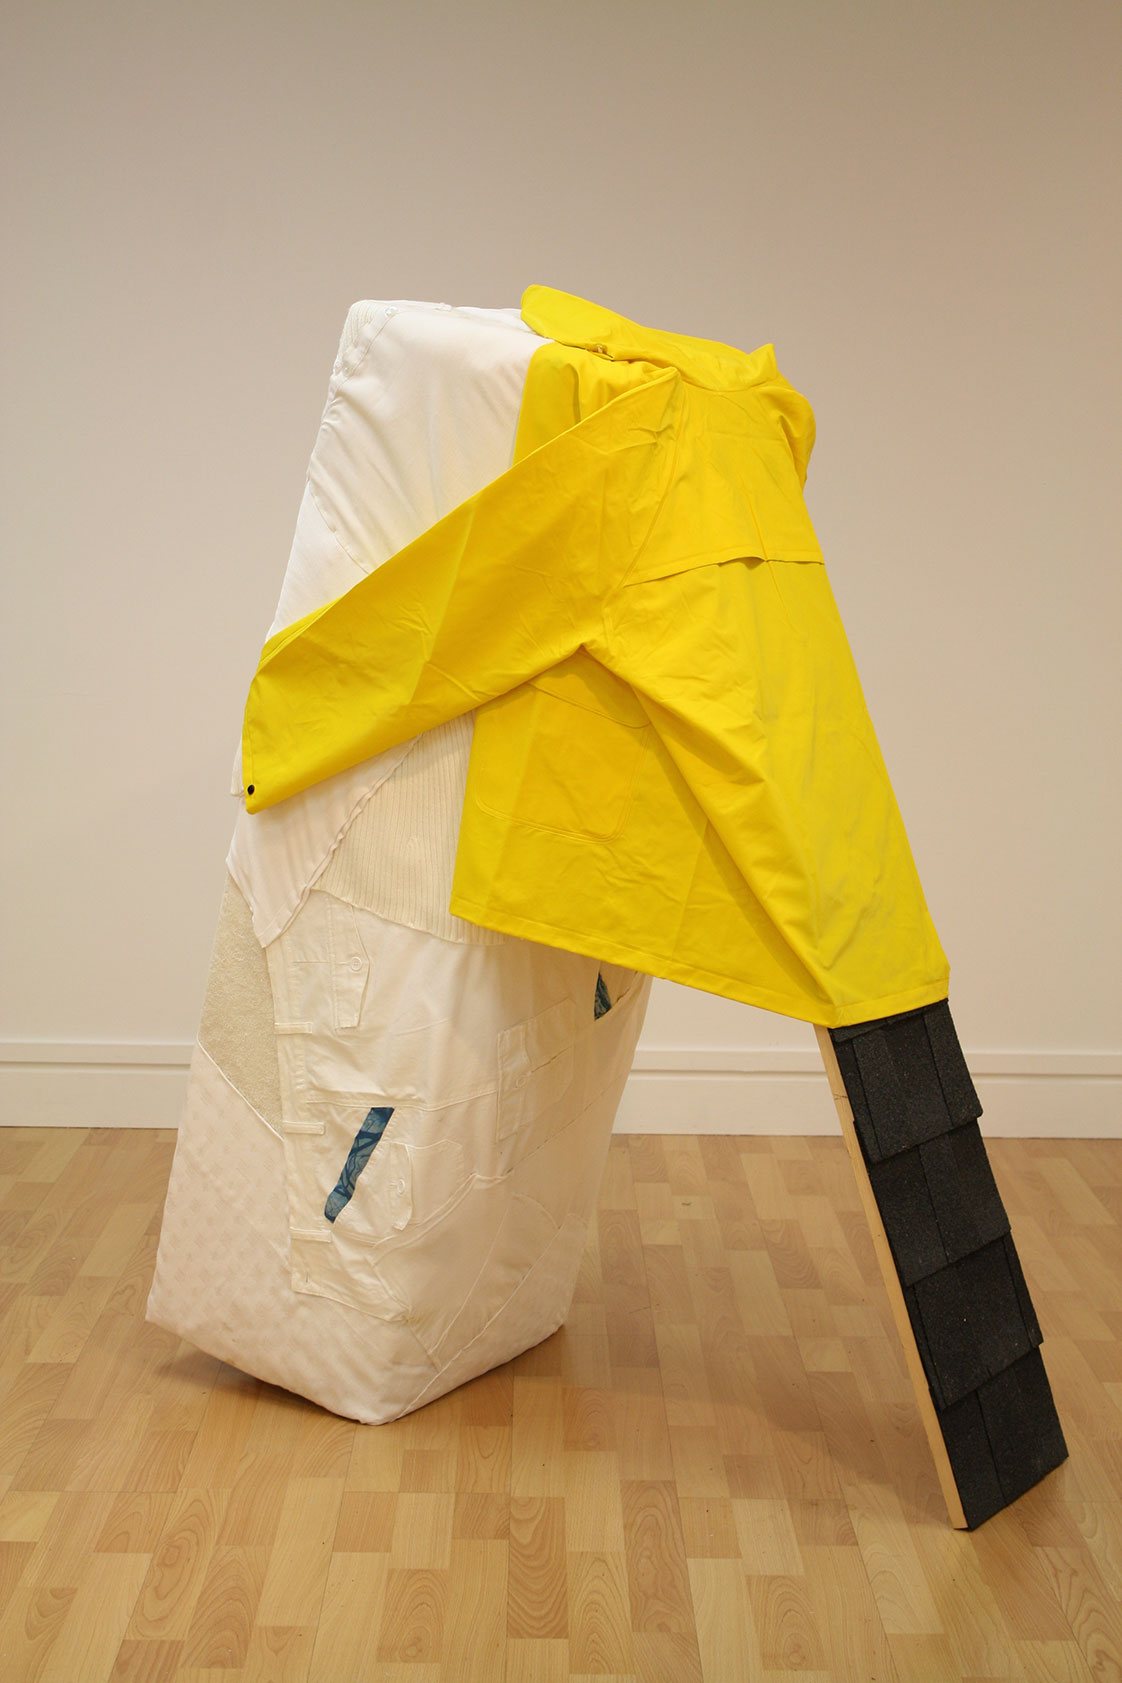 Thea Clark, Shelter (for the new disasters)